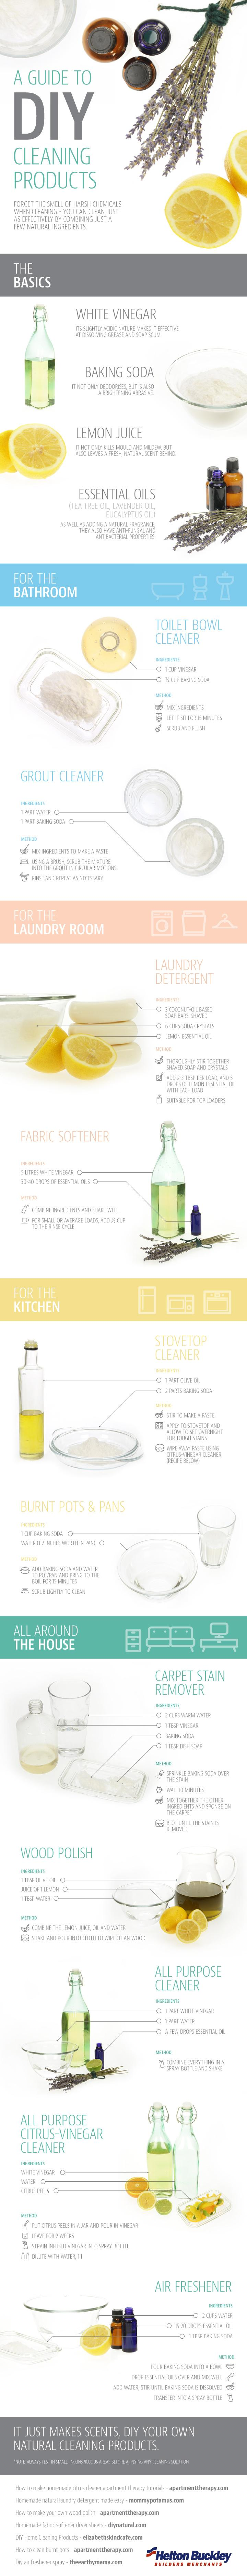 a-guide-to-diy-cleaning-products